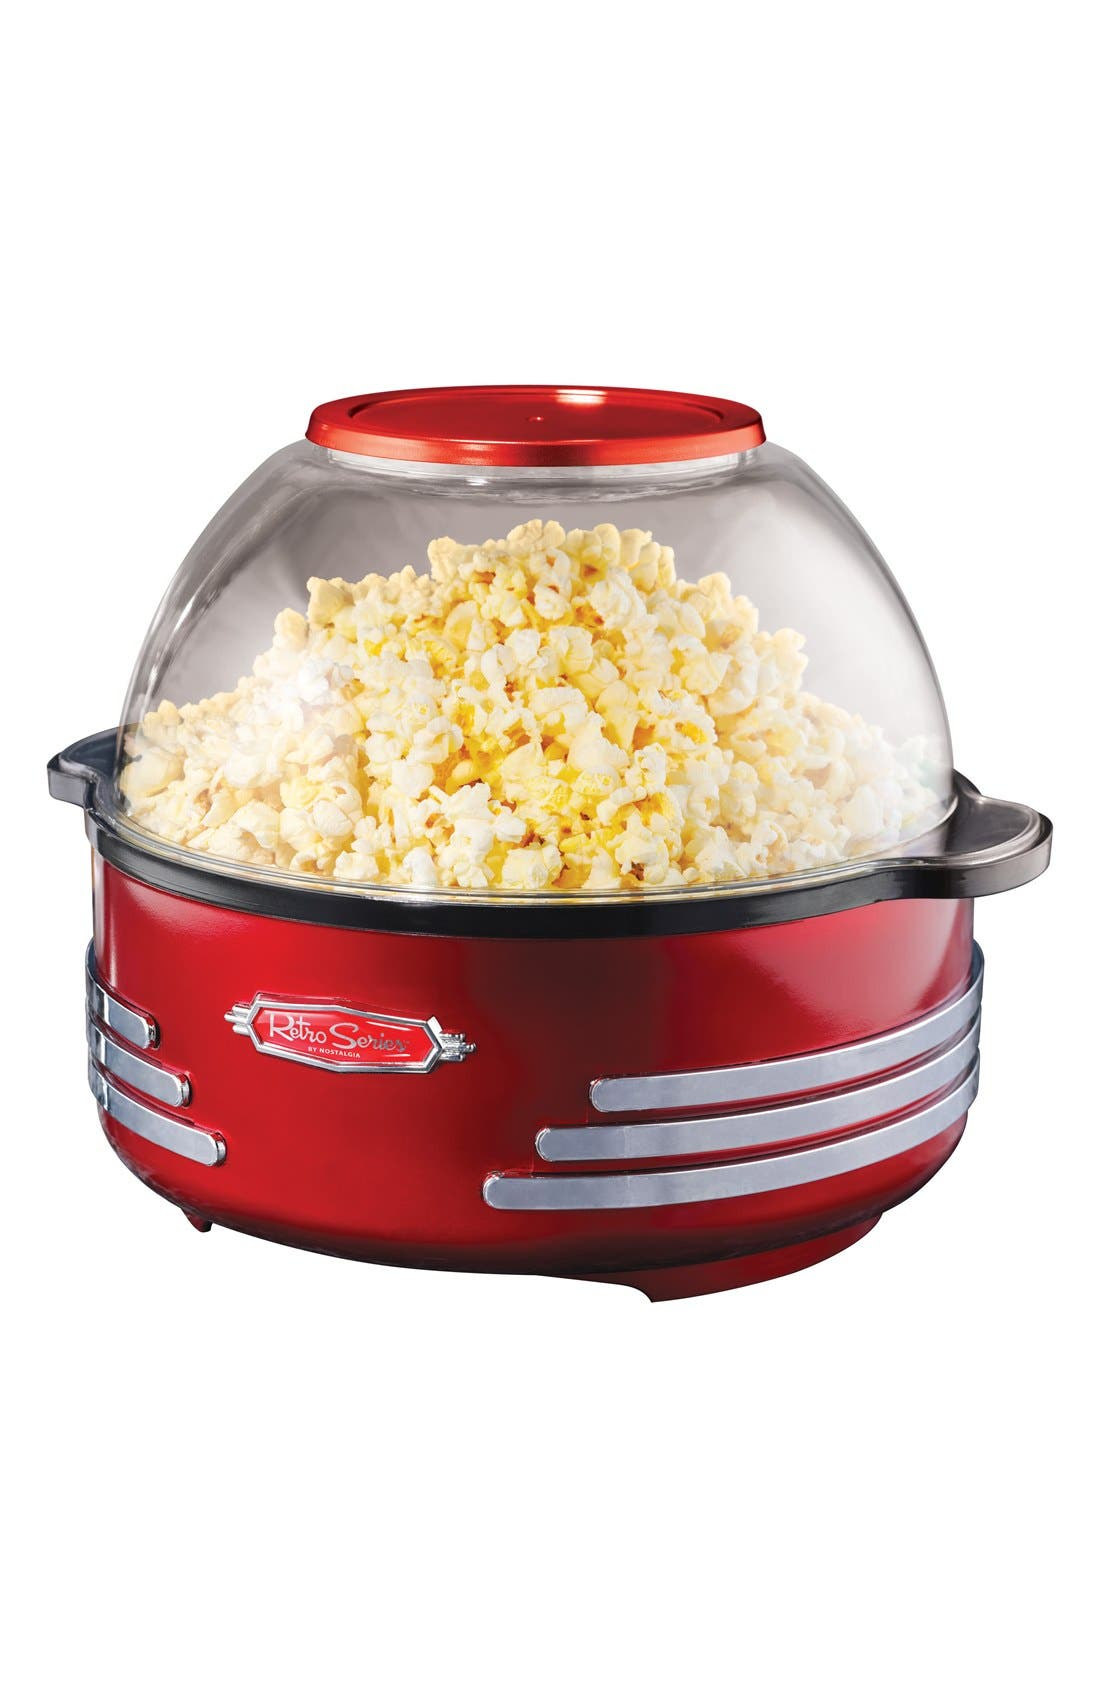 Main Image - Nostalgia Electronics Retro Stirring Popcorn Maker